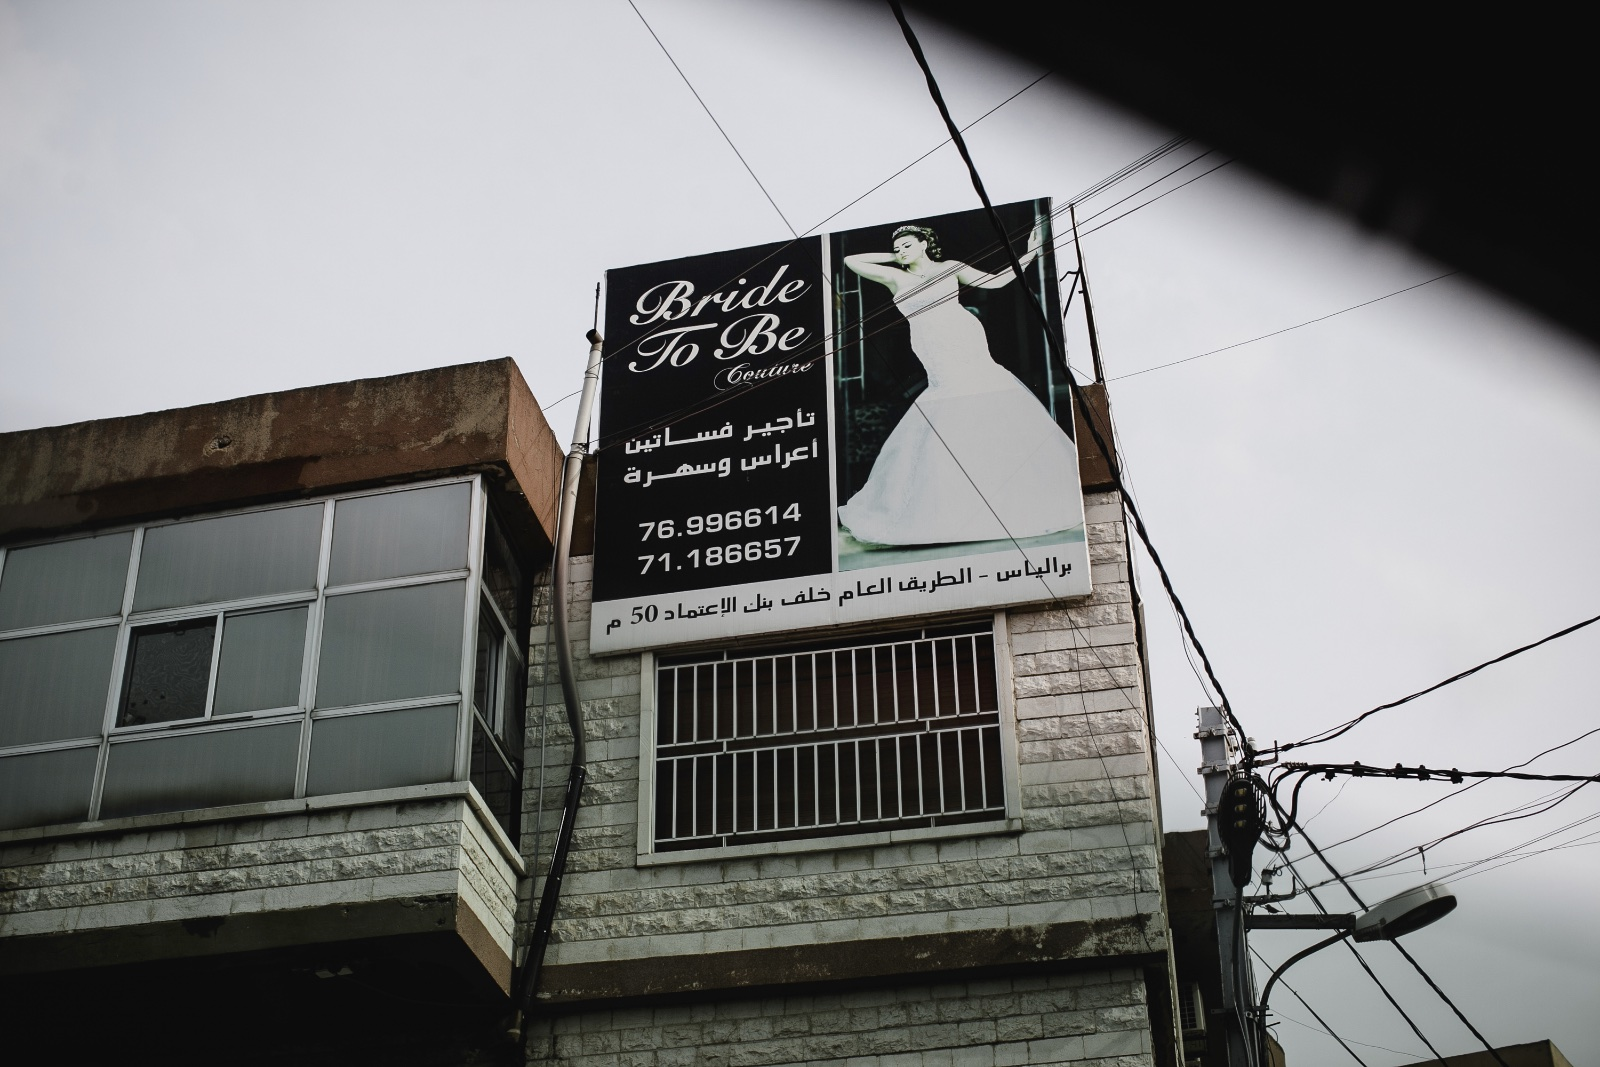 A billboard for wedding services is seen on top of a building in the Bekaa Valley, Lebanon on January 21, 2016.  (Christopher Lee/GroundTruth)